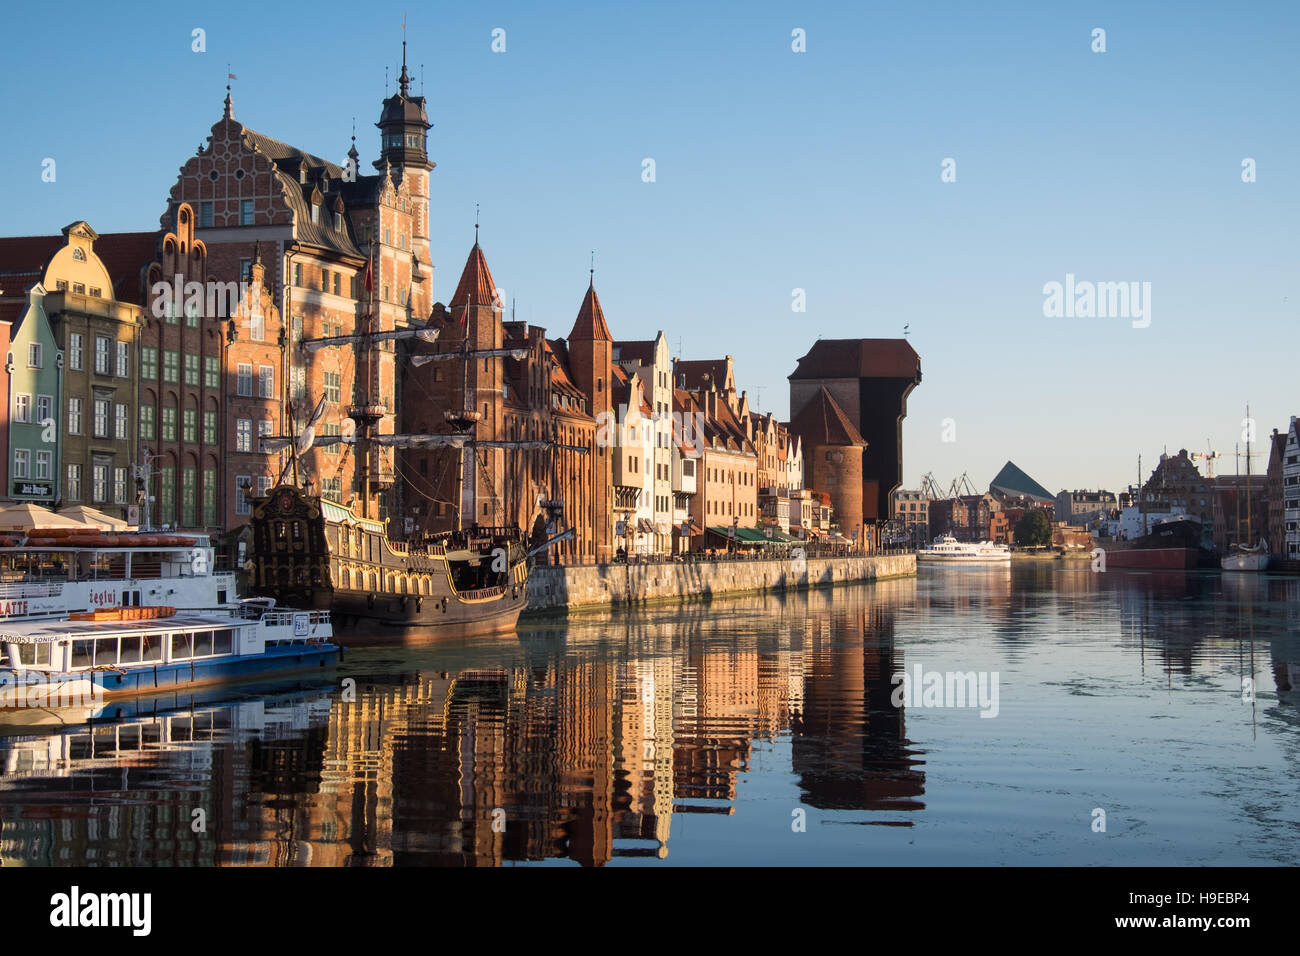 Morning light shines on the Old Town in Gdansk, Poland - Stock Image